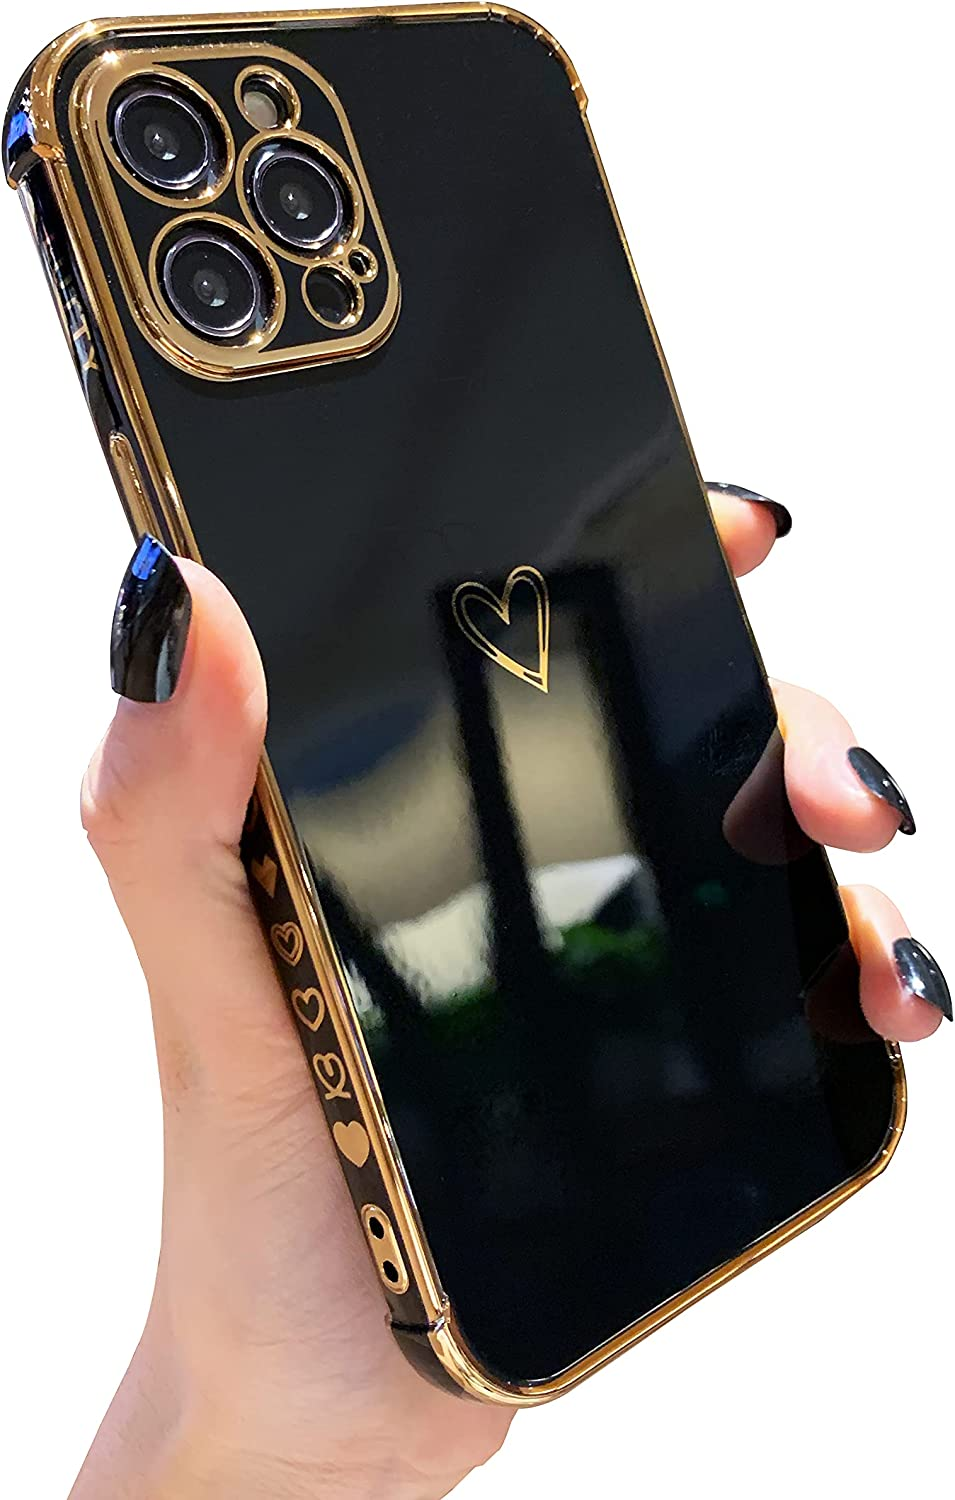 LUTTY Compatible with iPhone 12 Pro Max Case, Luxury Electroplate Edge Bumper Case, Full Camera Protection & Raised Reinforced Corners Shockproof Soft TPU Case Cover (6.7 inch) -Candy Black